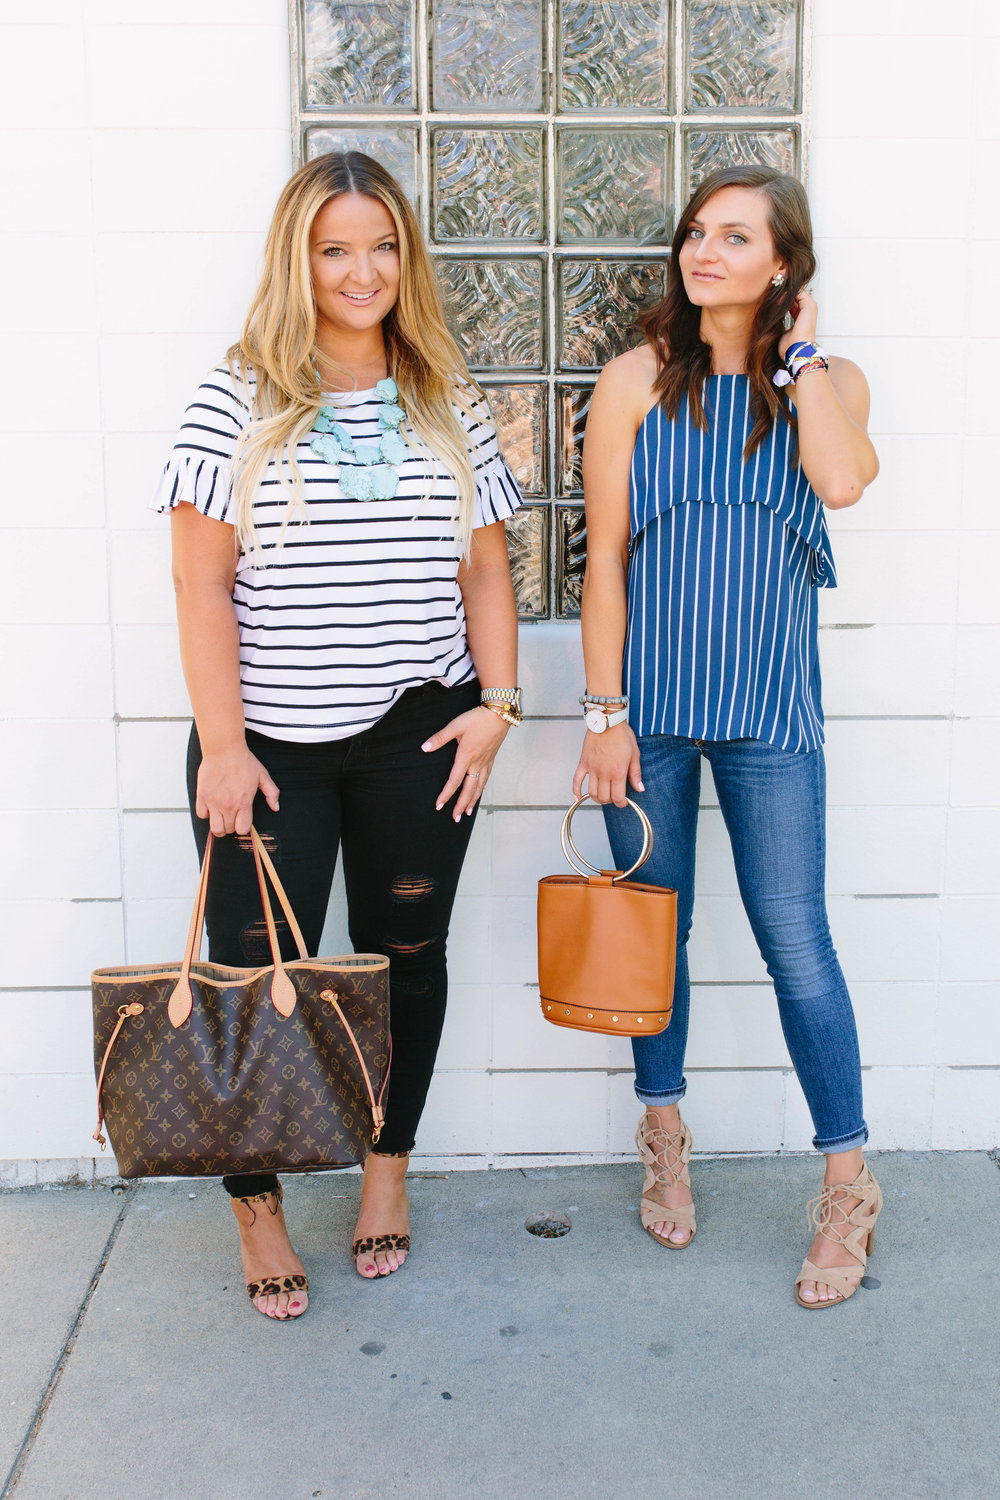 """<img src = how-to-wear-stripes.jpg"""" alt = """"how-to-wear-stripes-teddy-bears-and-lipstick-monthly-collab-self-confidence-sam-edelman-yardley-rag-and-bone-sonoma-capri-skinny-jeans-francescas-striped-ruffle-cami-statement-bag-fashion-blogger-collaboration-love-your-body"""""""